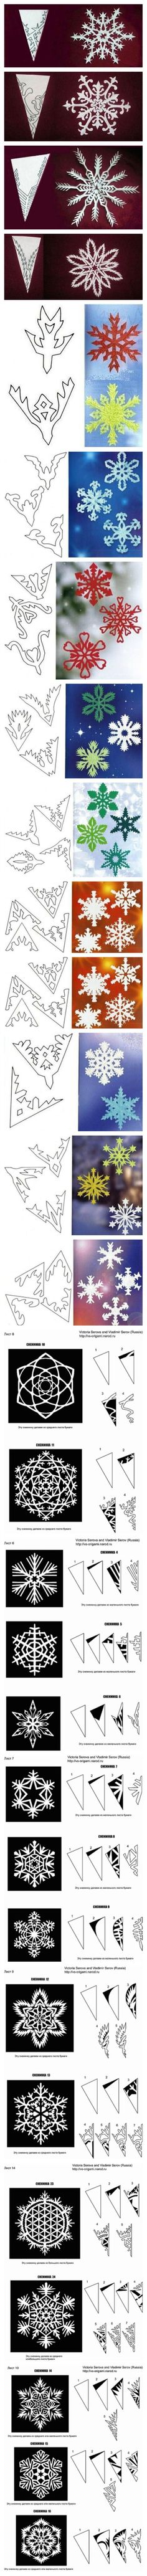 Some awesome patterns for snowflakes!